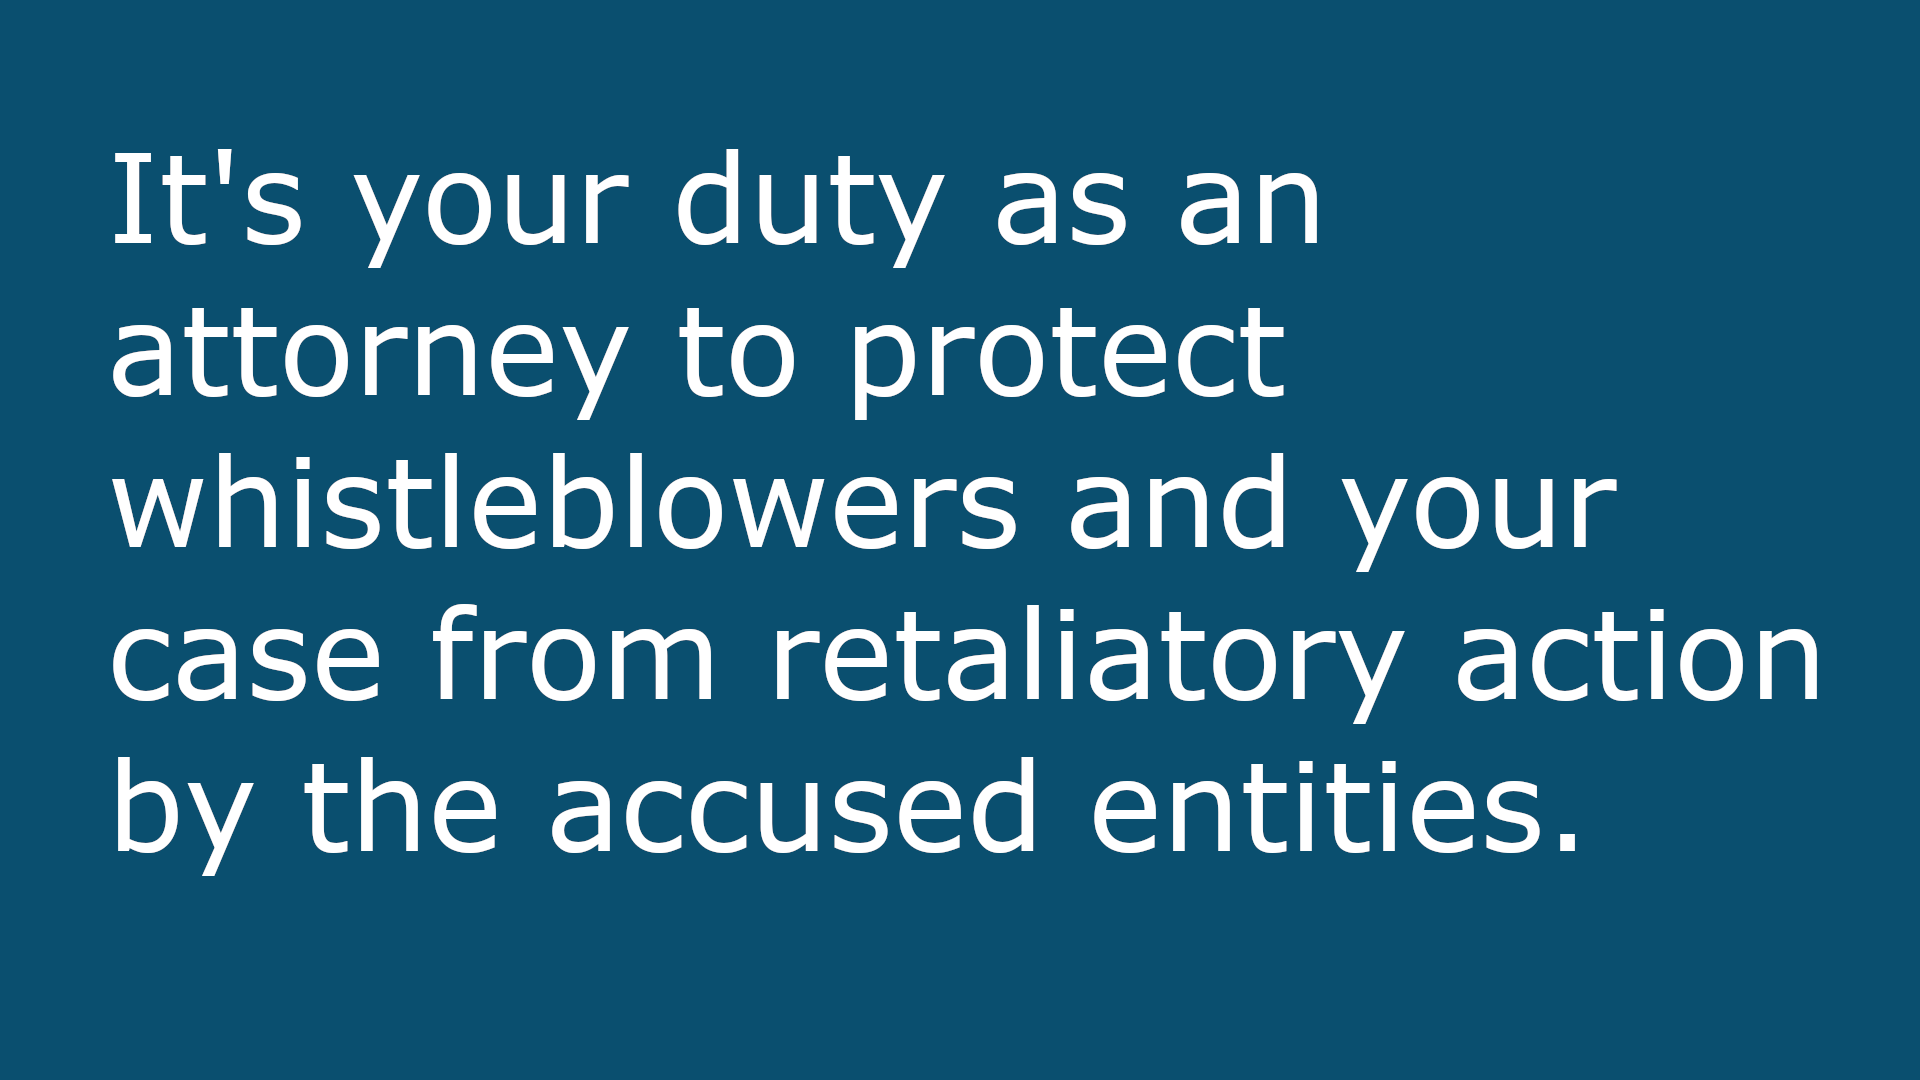 It's your duty as an attorney to protect whistleblowers and your case from retaliatory action by the accused entities.